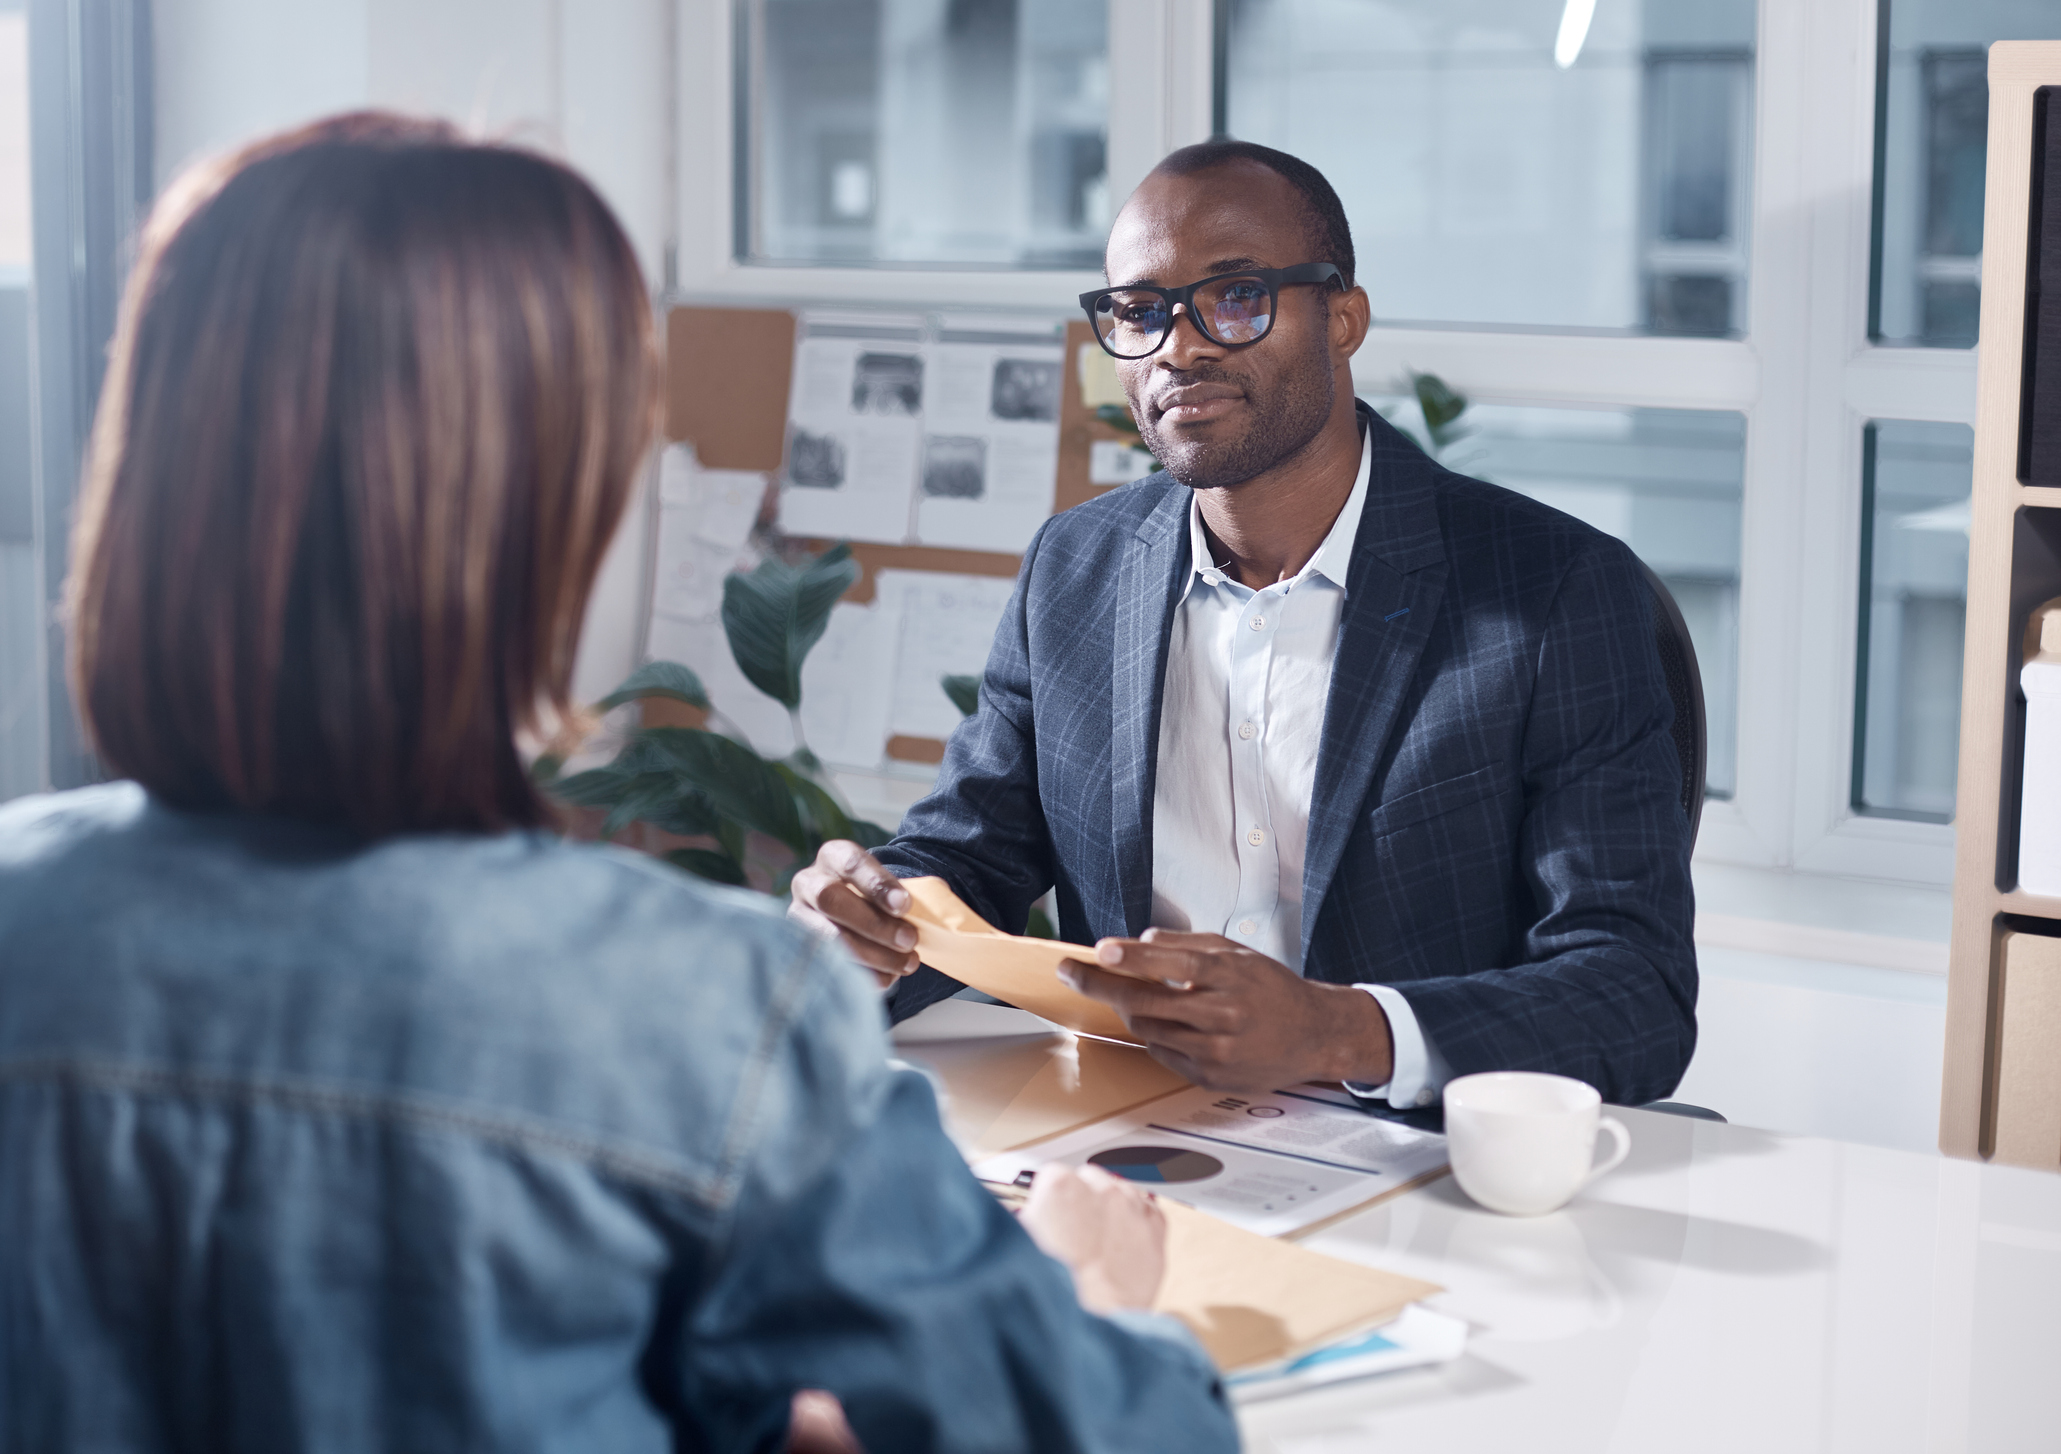 Man holding a folder while having a business meeting with a woman.